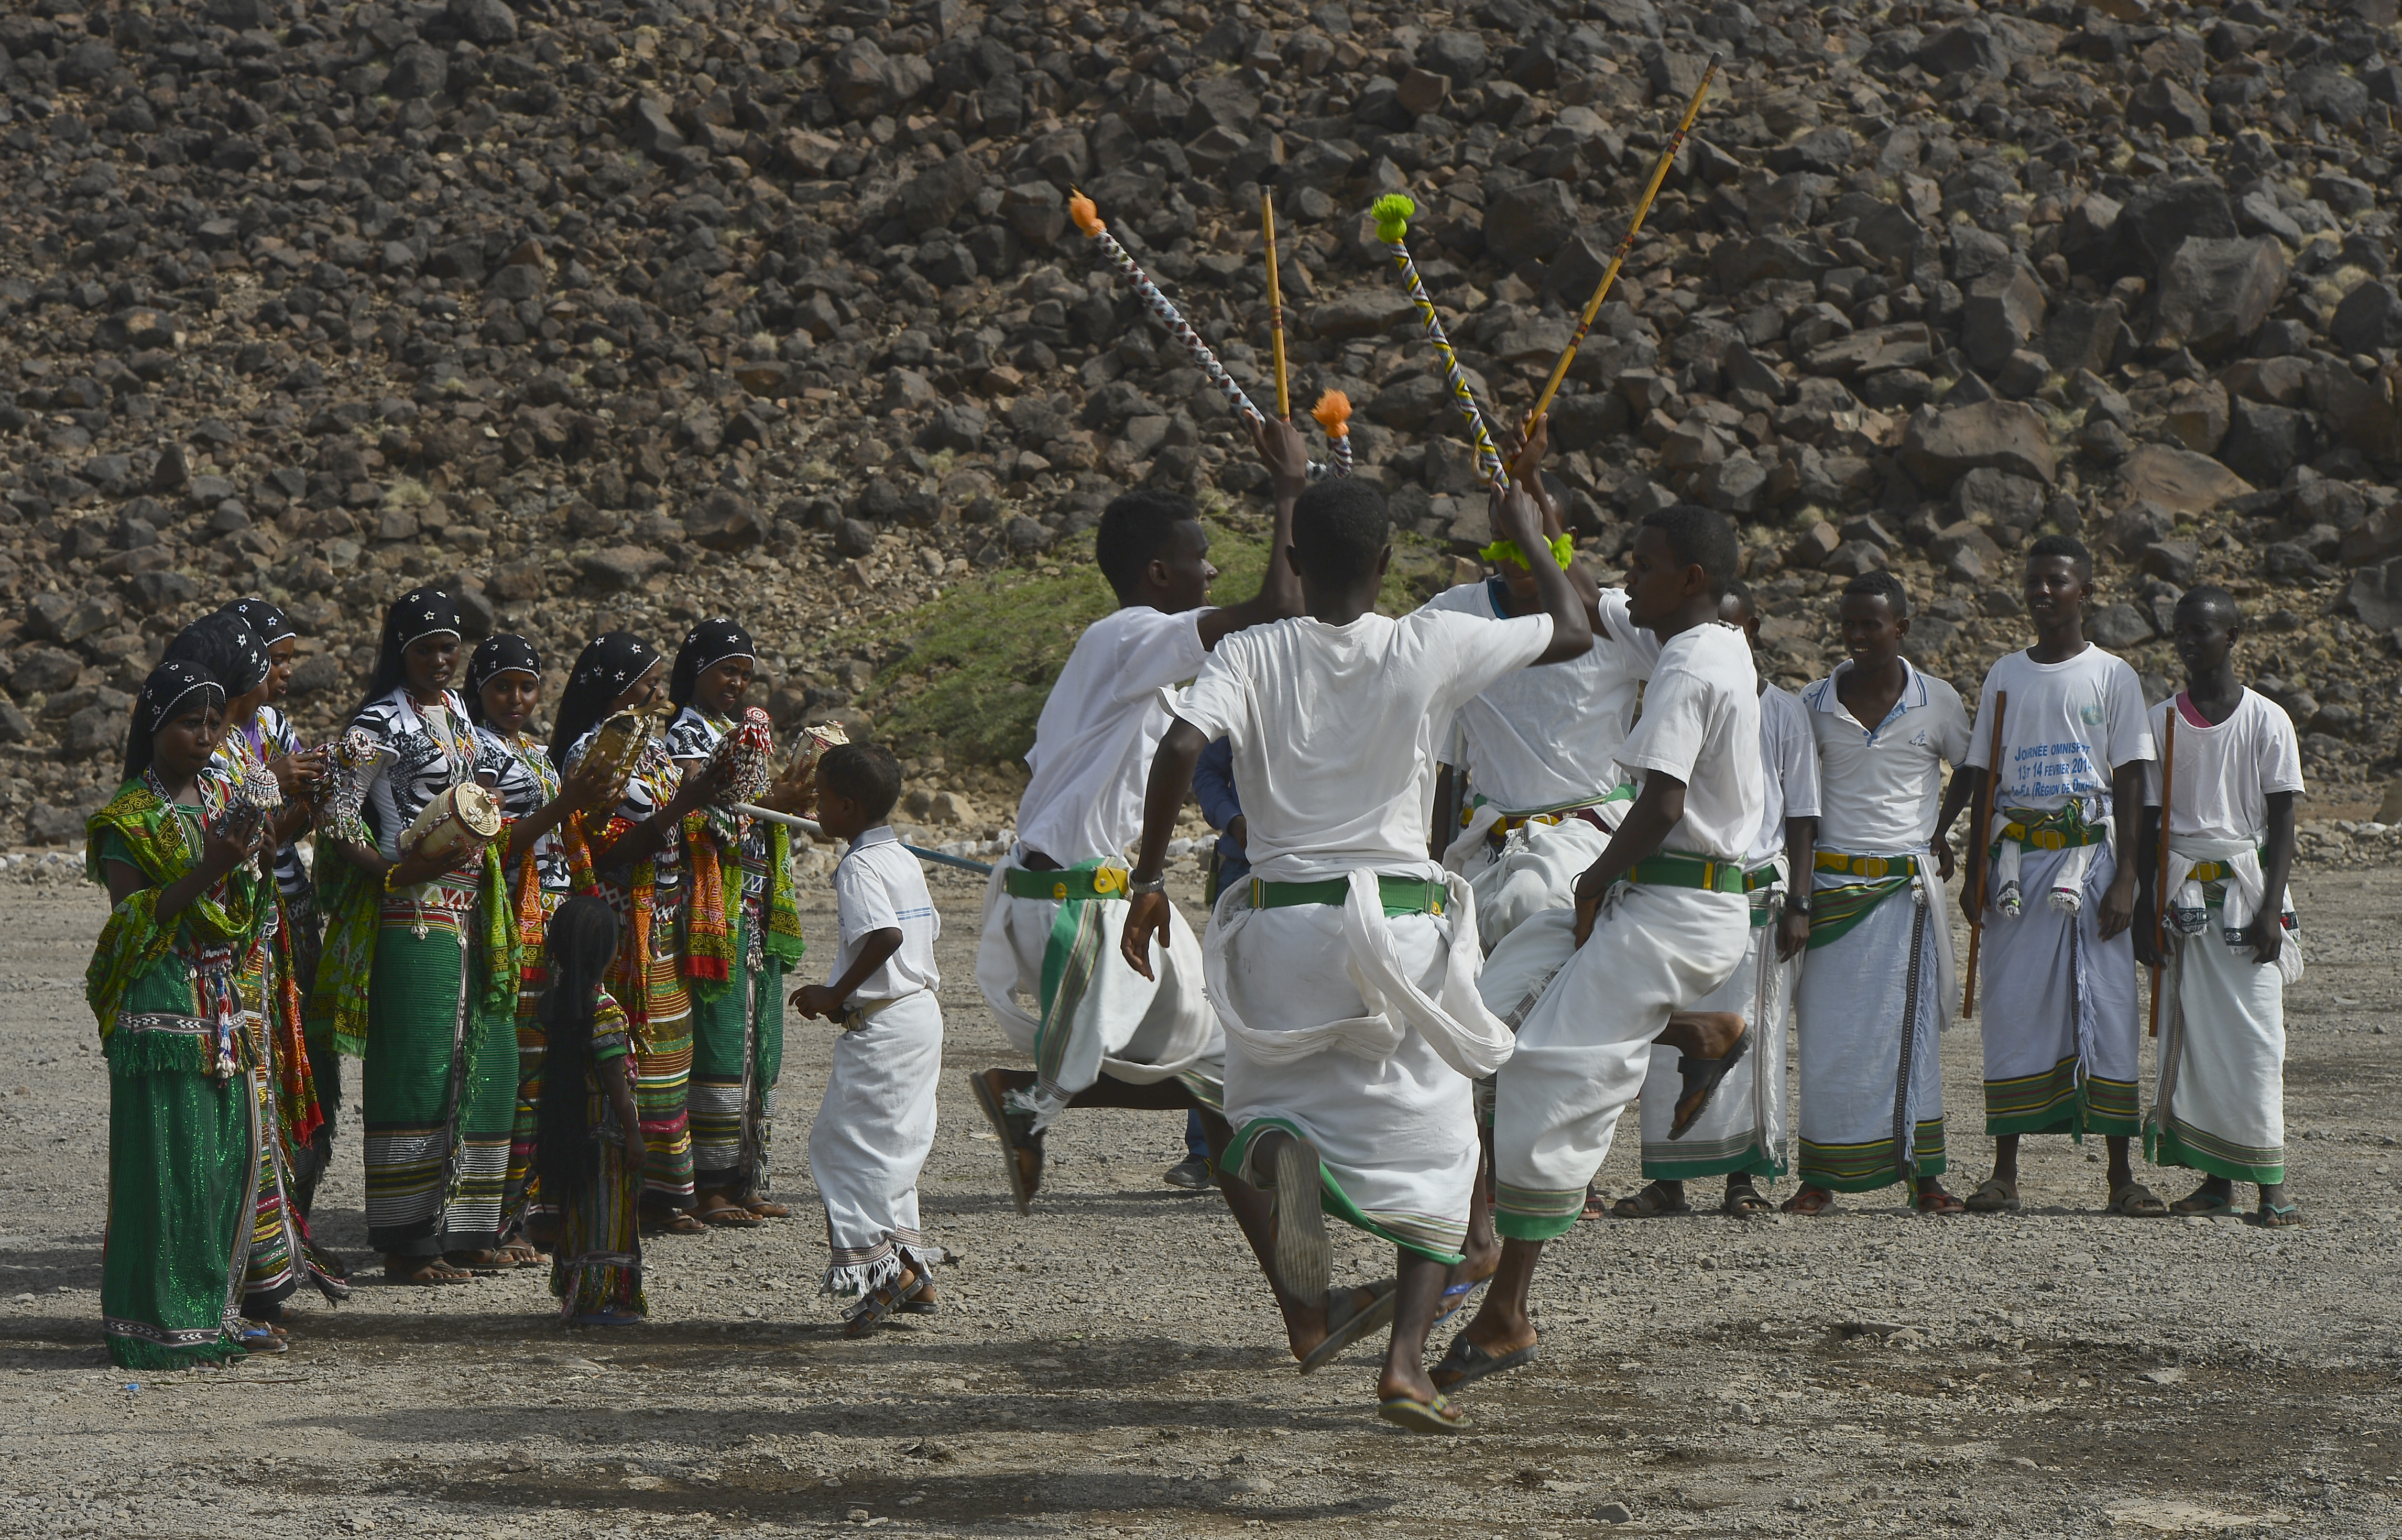 Issa tribesmen members perform a cultural dance during the 21st Induction Ceremony of the Sultan of Gobaad in Dikhil, Djibouti, May 22, 2015. Issa is one of two main ethnic groups in Djibouti. (U.S. Air Force photo by Senior Airman Nesha Humes)